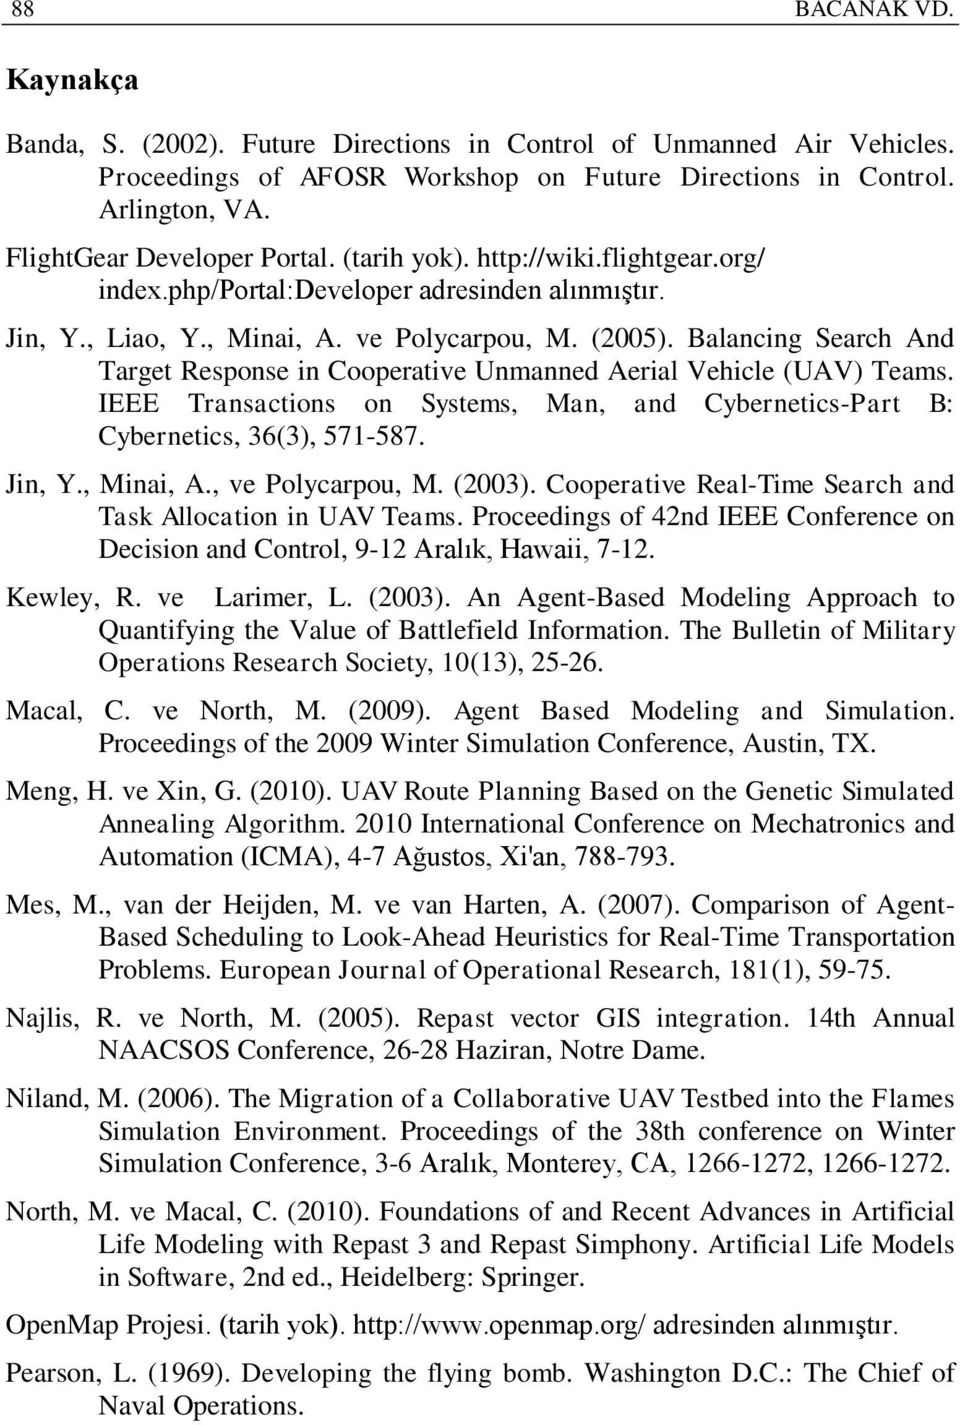 Balancing Search And Target Response in Cooperative Unmanned Aerial Vehicle (UAV) Teams. IEEE Transactions on Systems, Man, and Cybernetics-Part B: Cybernetics, 36(3), 571-587. Jin, Y., Minai, A.